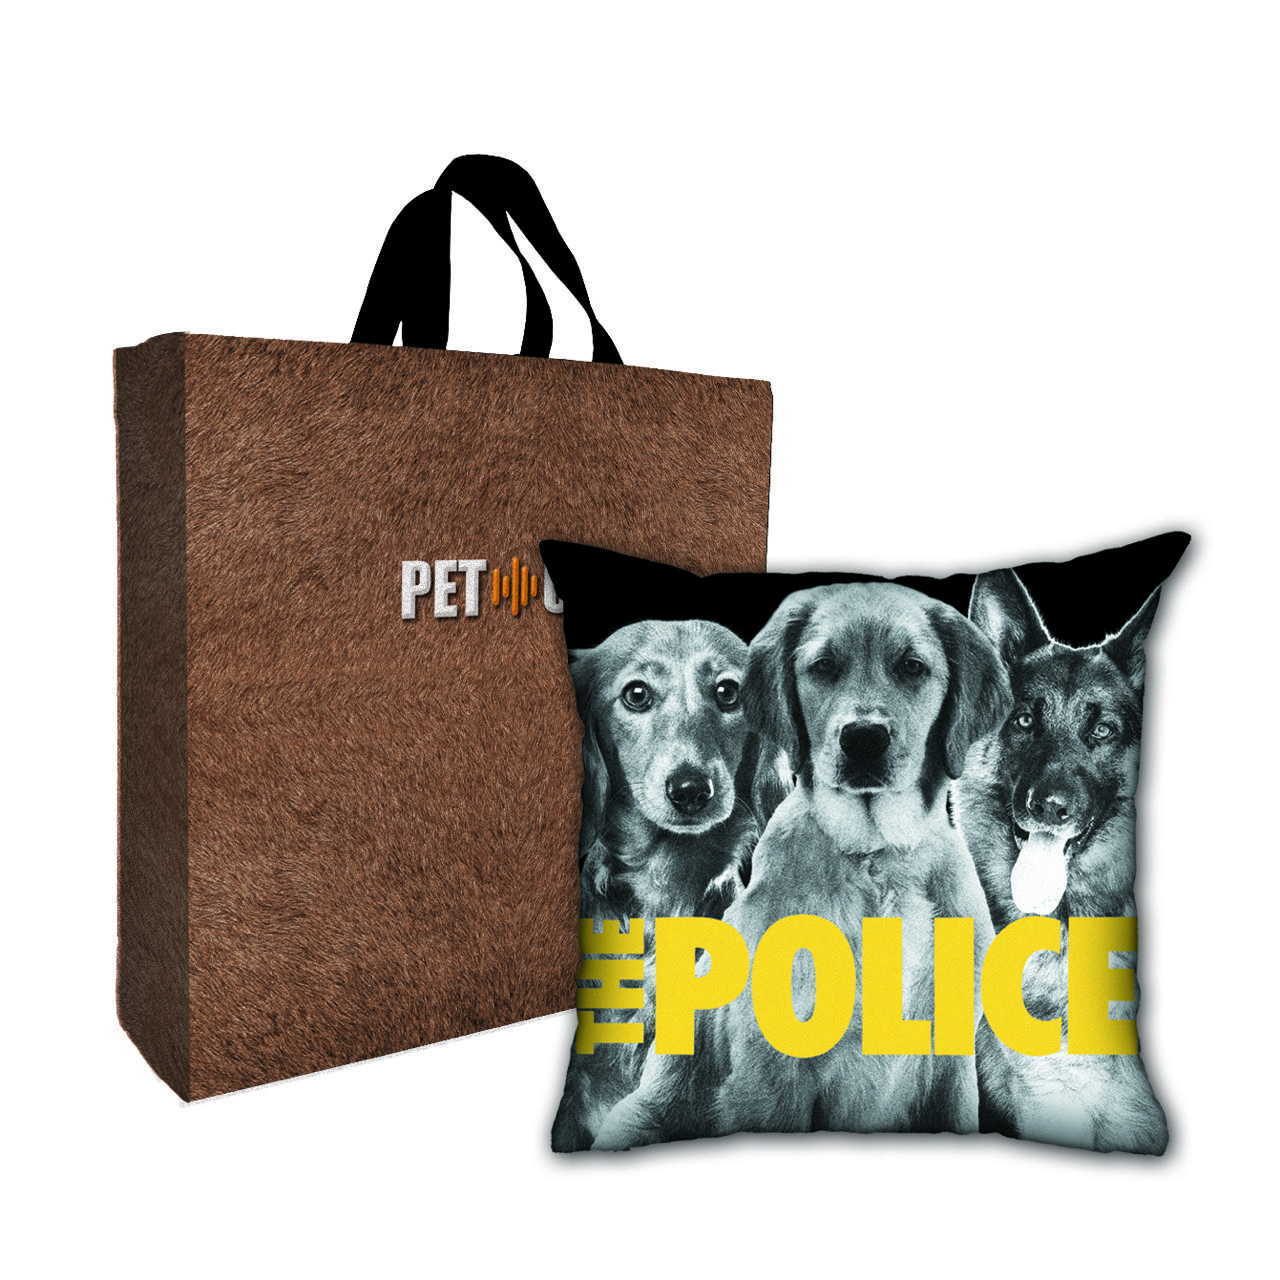 Kit Almofada & Sacola Bege Pet Use -Security Dogs - Cachorros